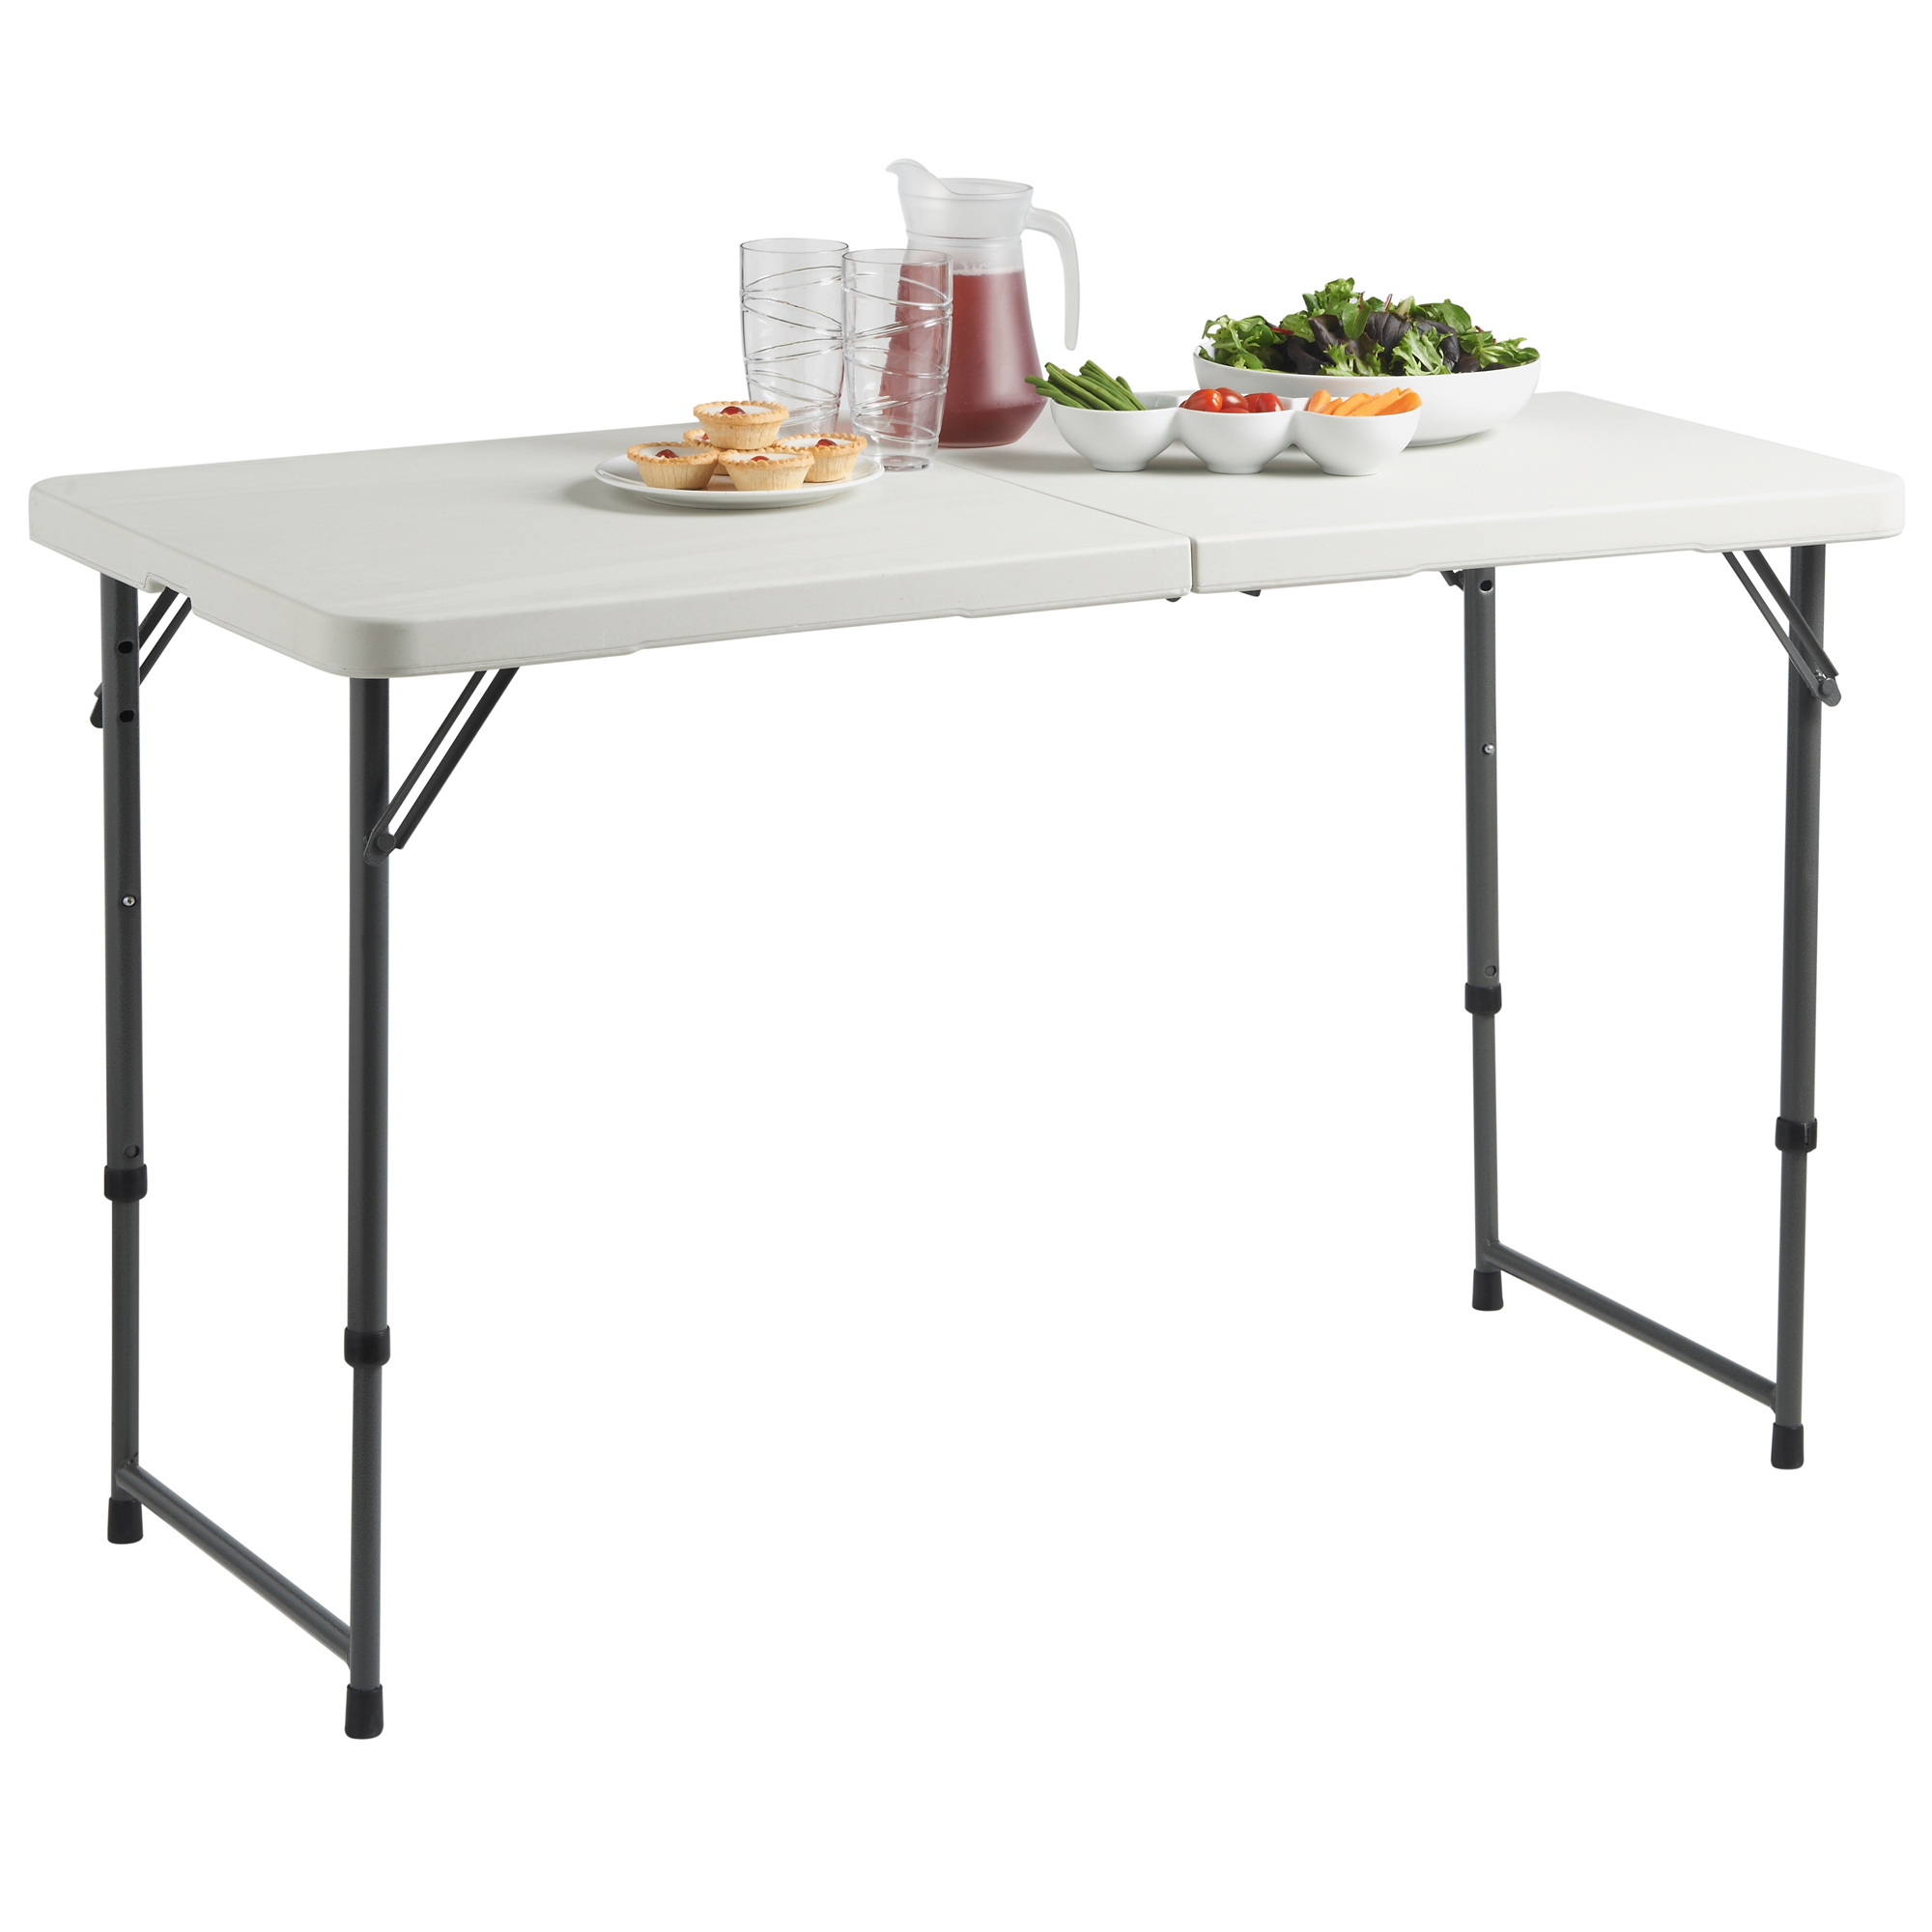 Sentinel VonHaus 4ft Folding Table With Adjustable Height Utility Table For  Picnic / Garden / Tailgate /